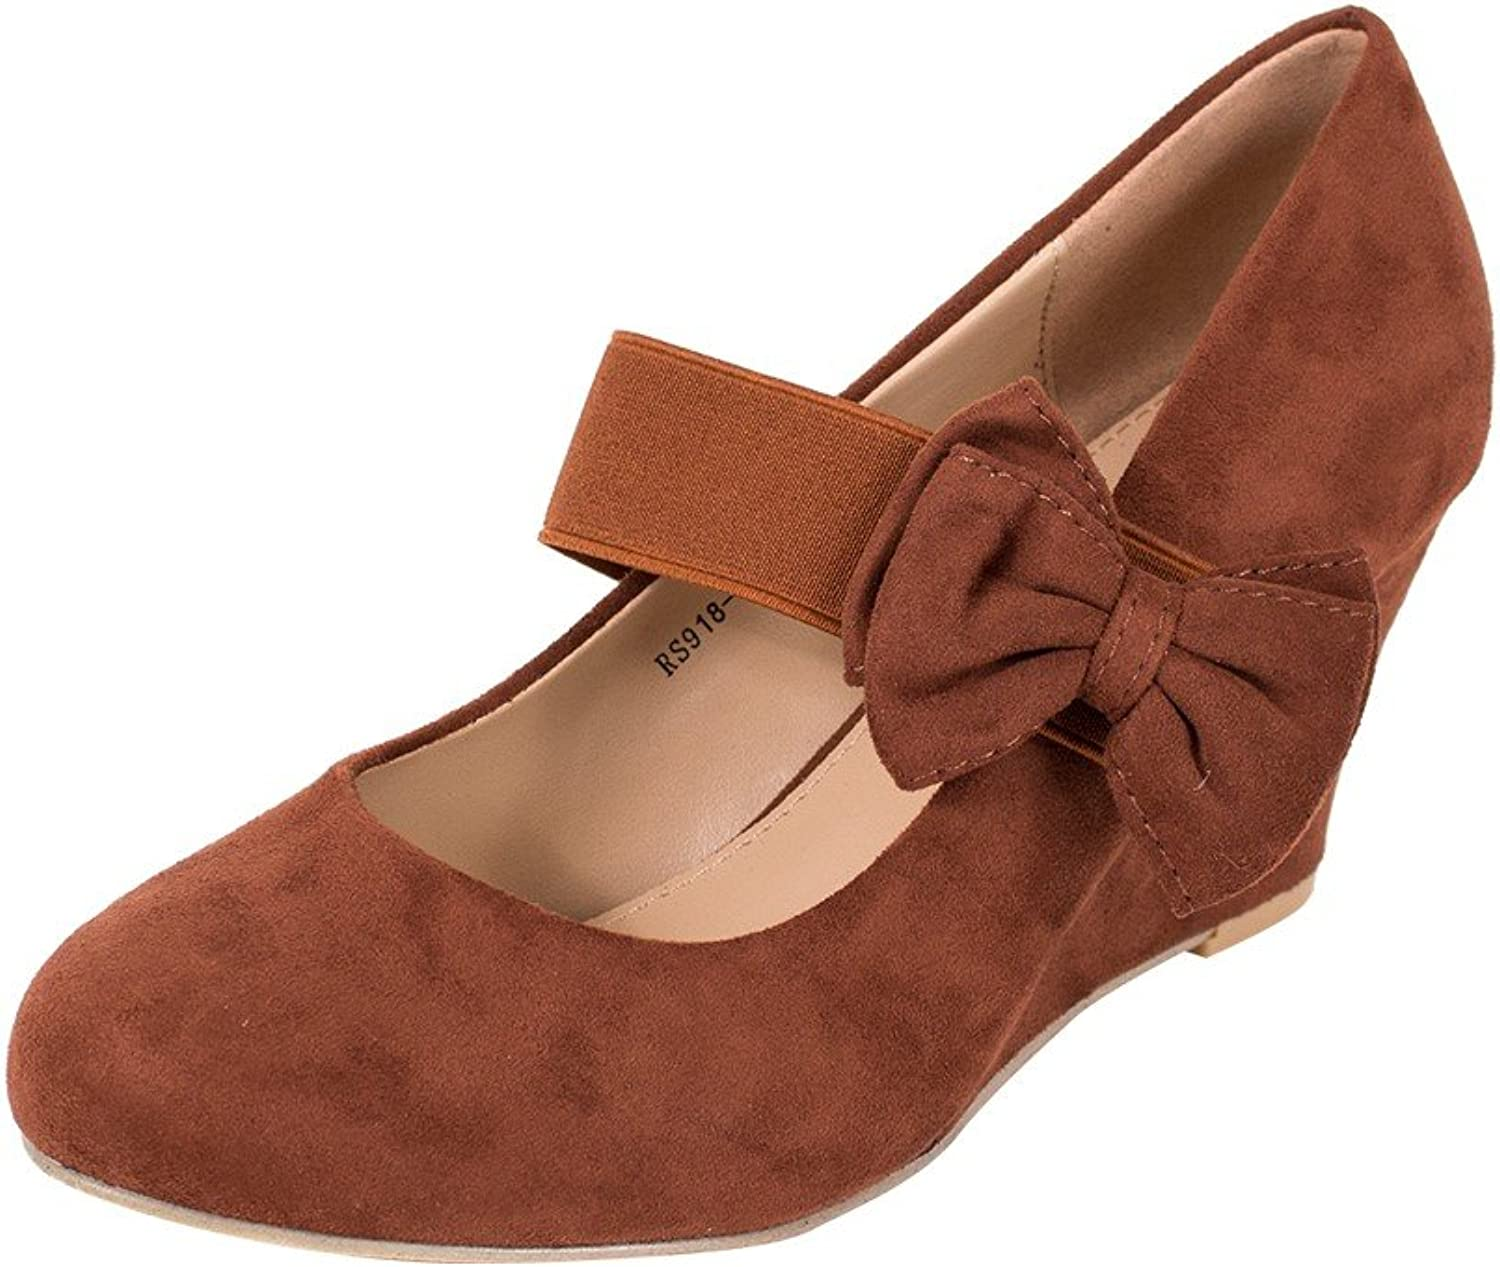 GREENS Round Toe Faux Suede Mid Wedge Pump Slip On Women shoes